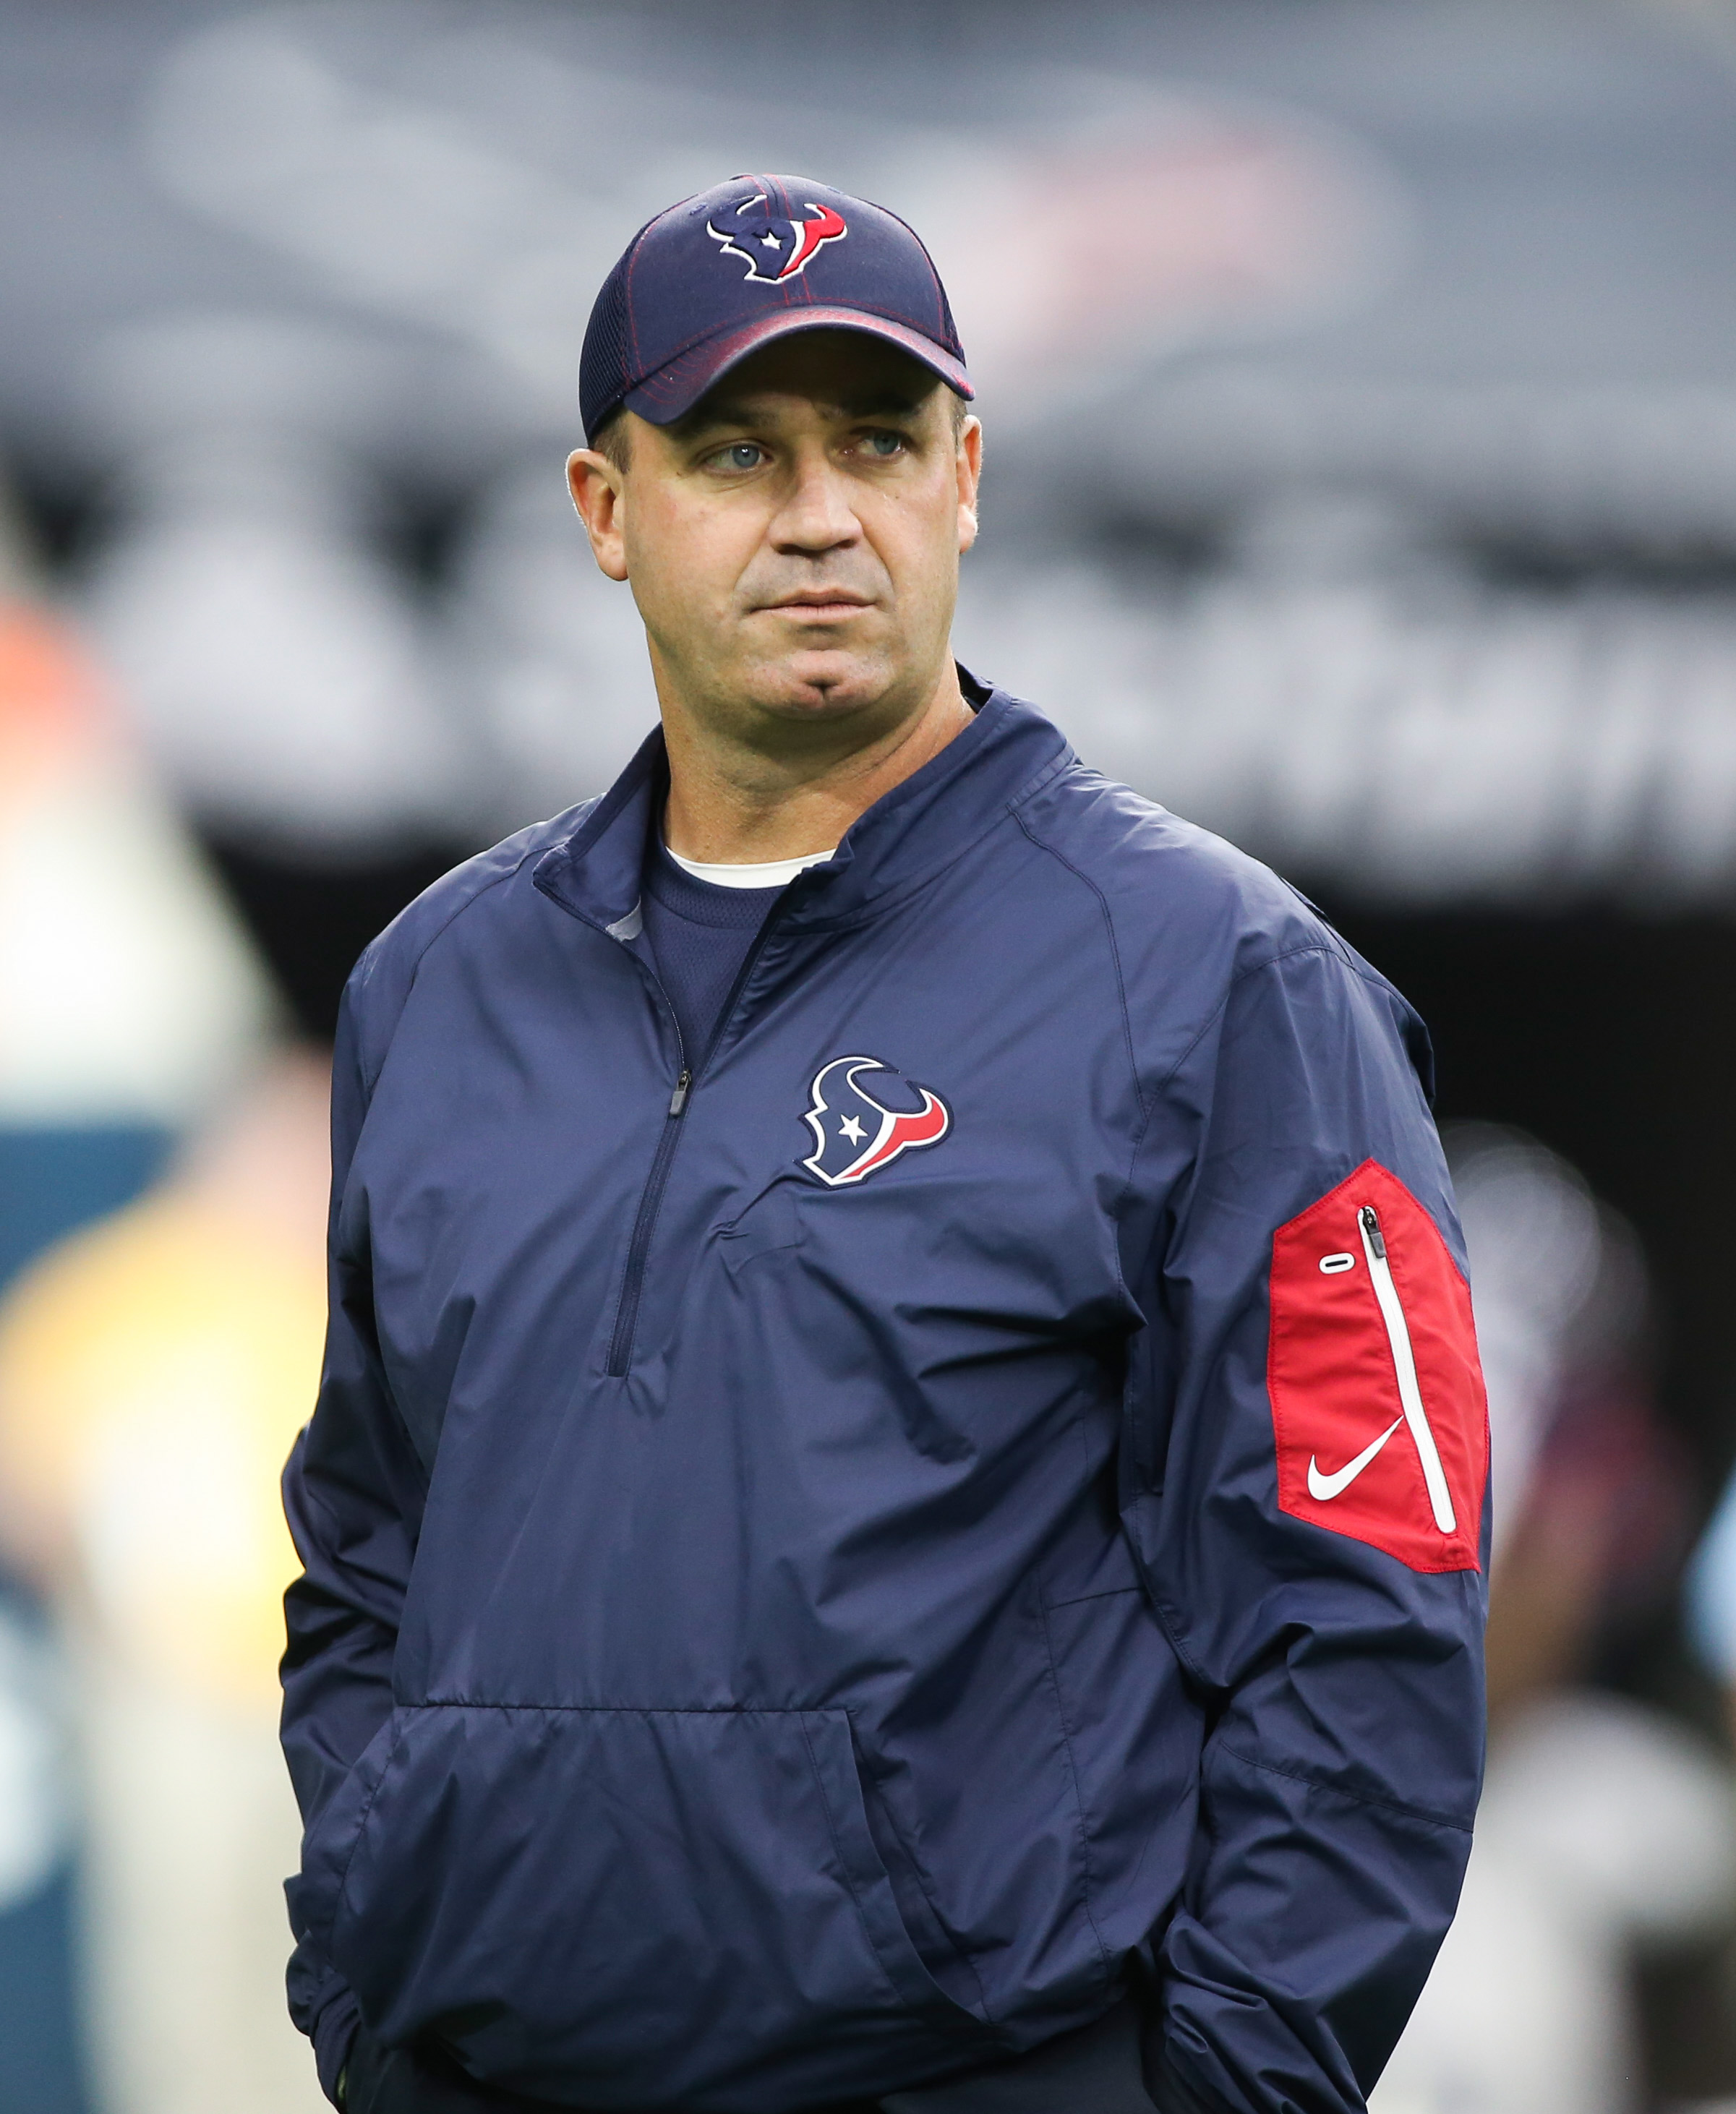 Bill O'Brien, Rick Smith, and the rest of the front office are hard at work scouring the waiver wire